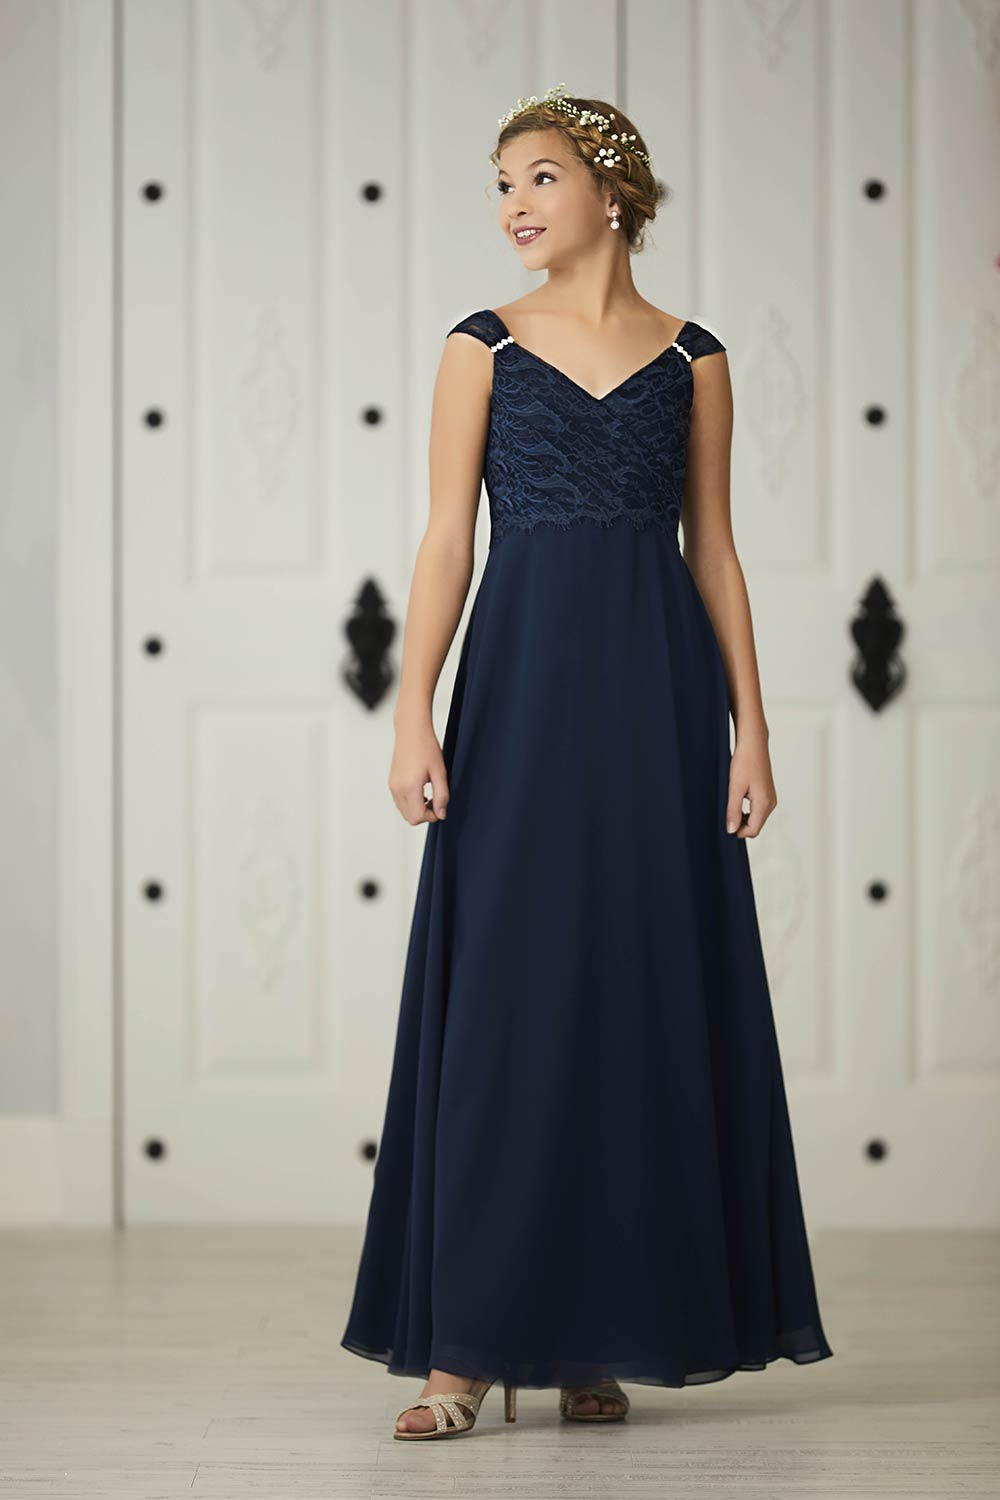 bridesmaid-dresses-jacquelin-bridals-canada-27410